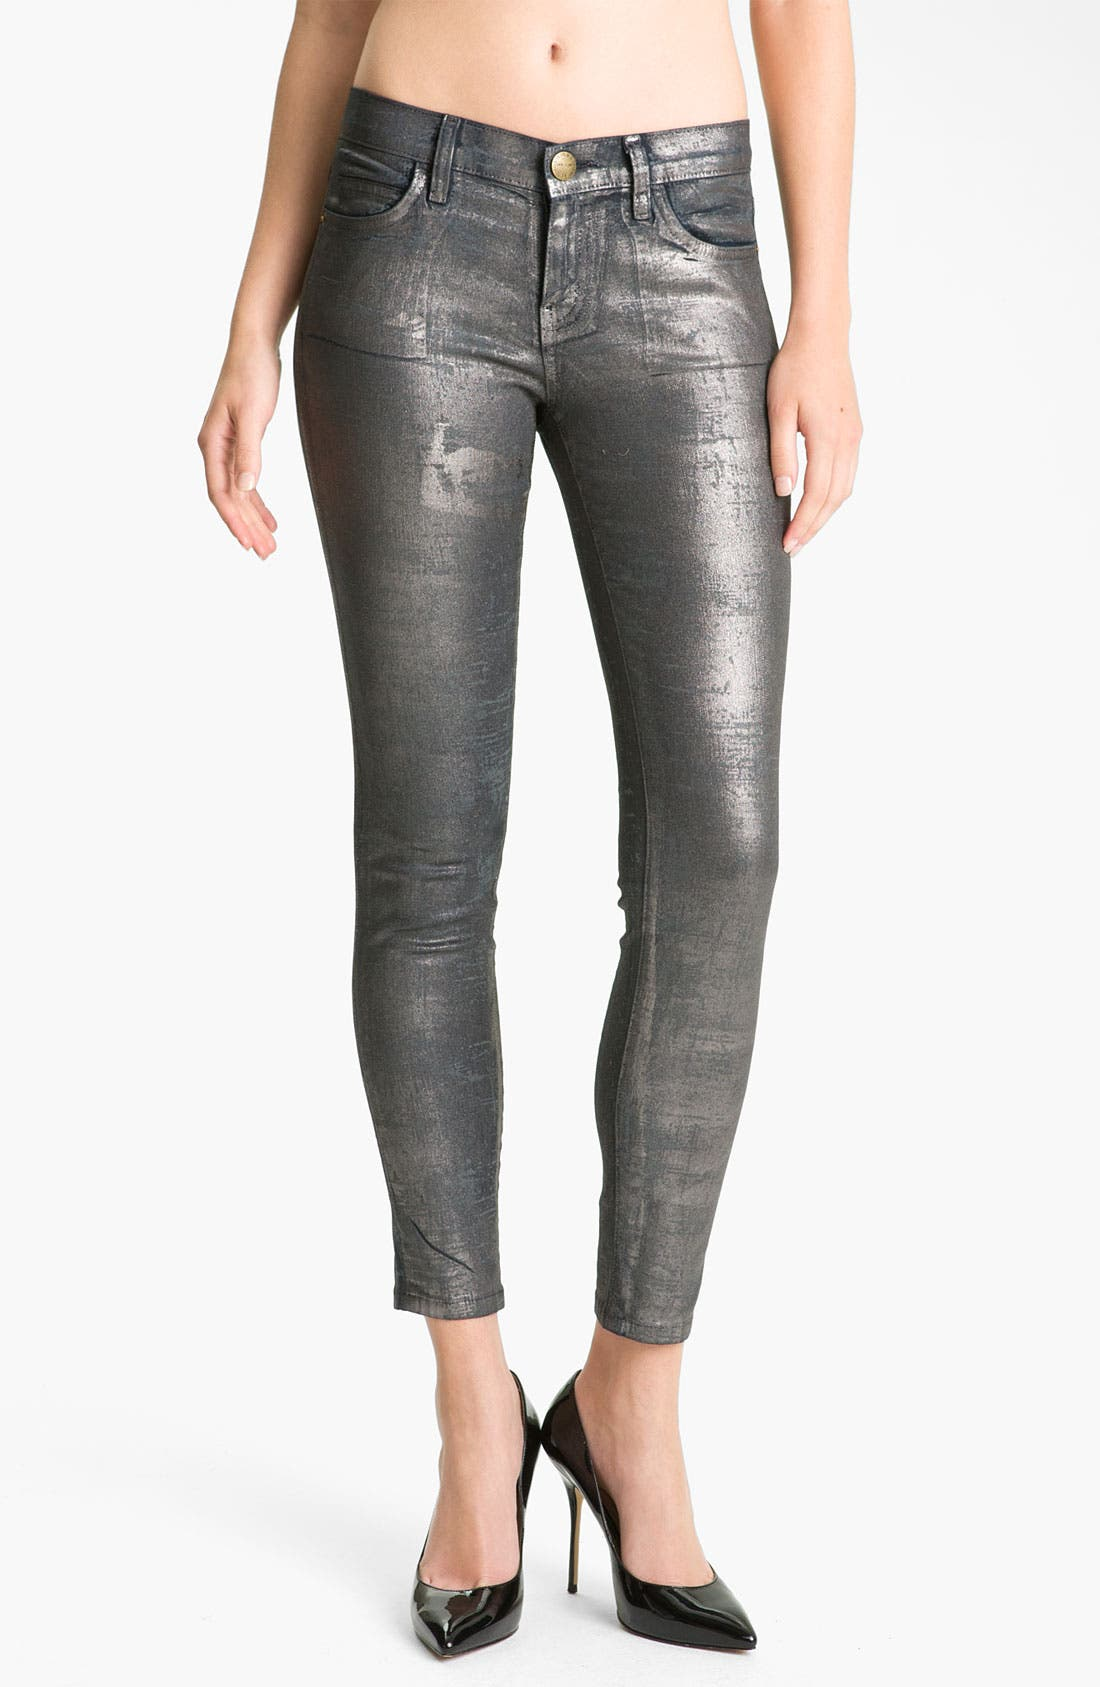 Alternate Image 1 Selected - Current/Elliott Metallic Skinny Jeans (Silver Coated Foil)